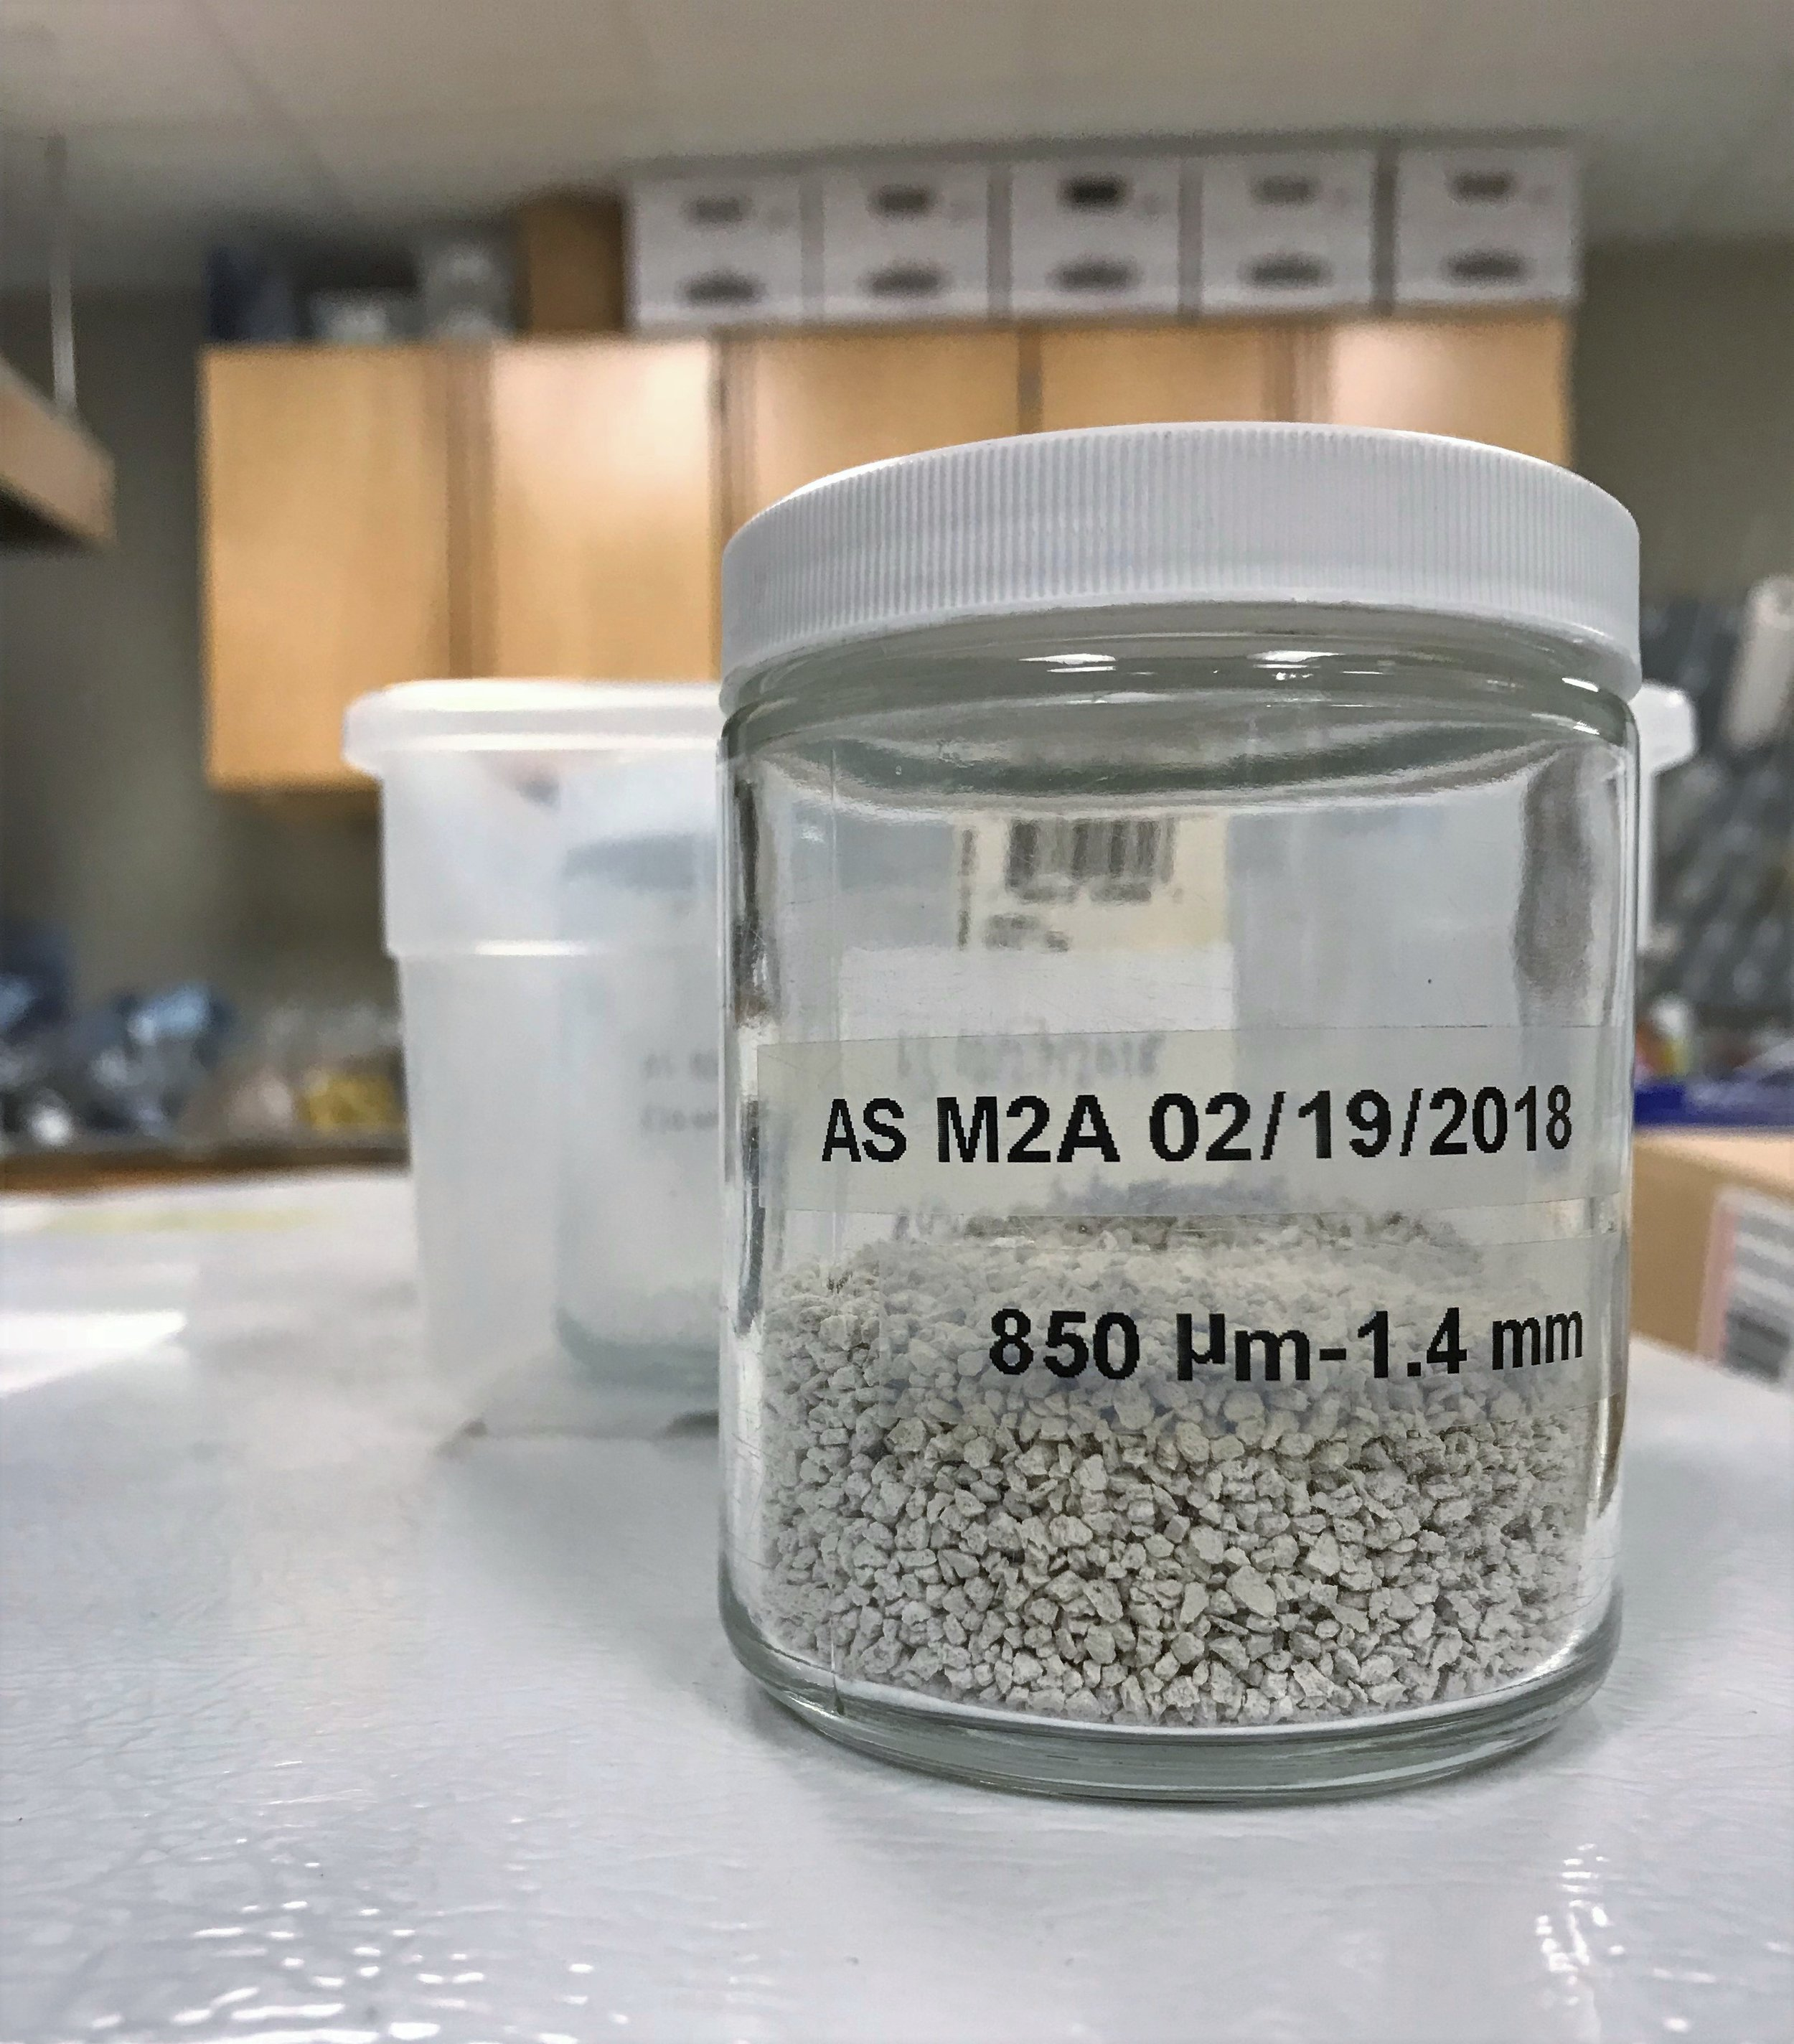 Artificial soil M2a (montmorillonite) sieved to 850 μm-1.4 mm